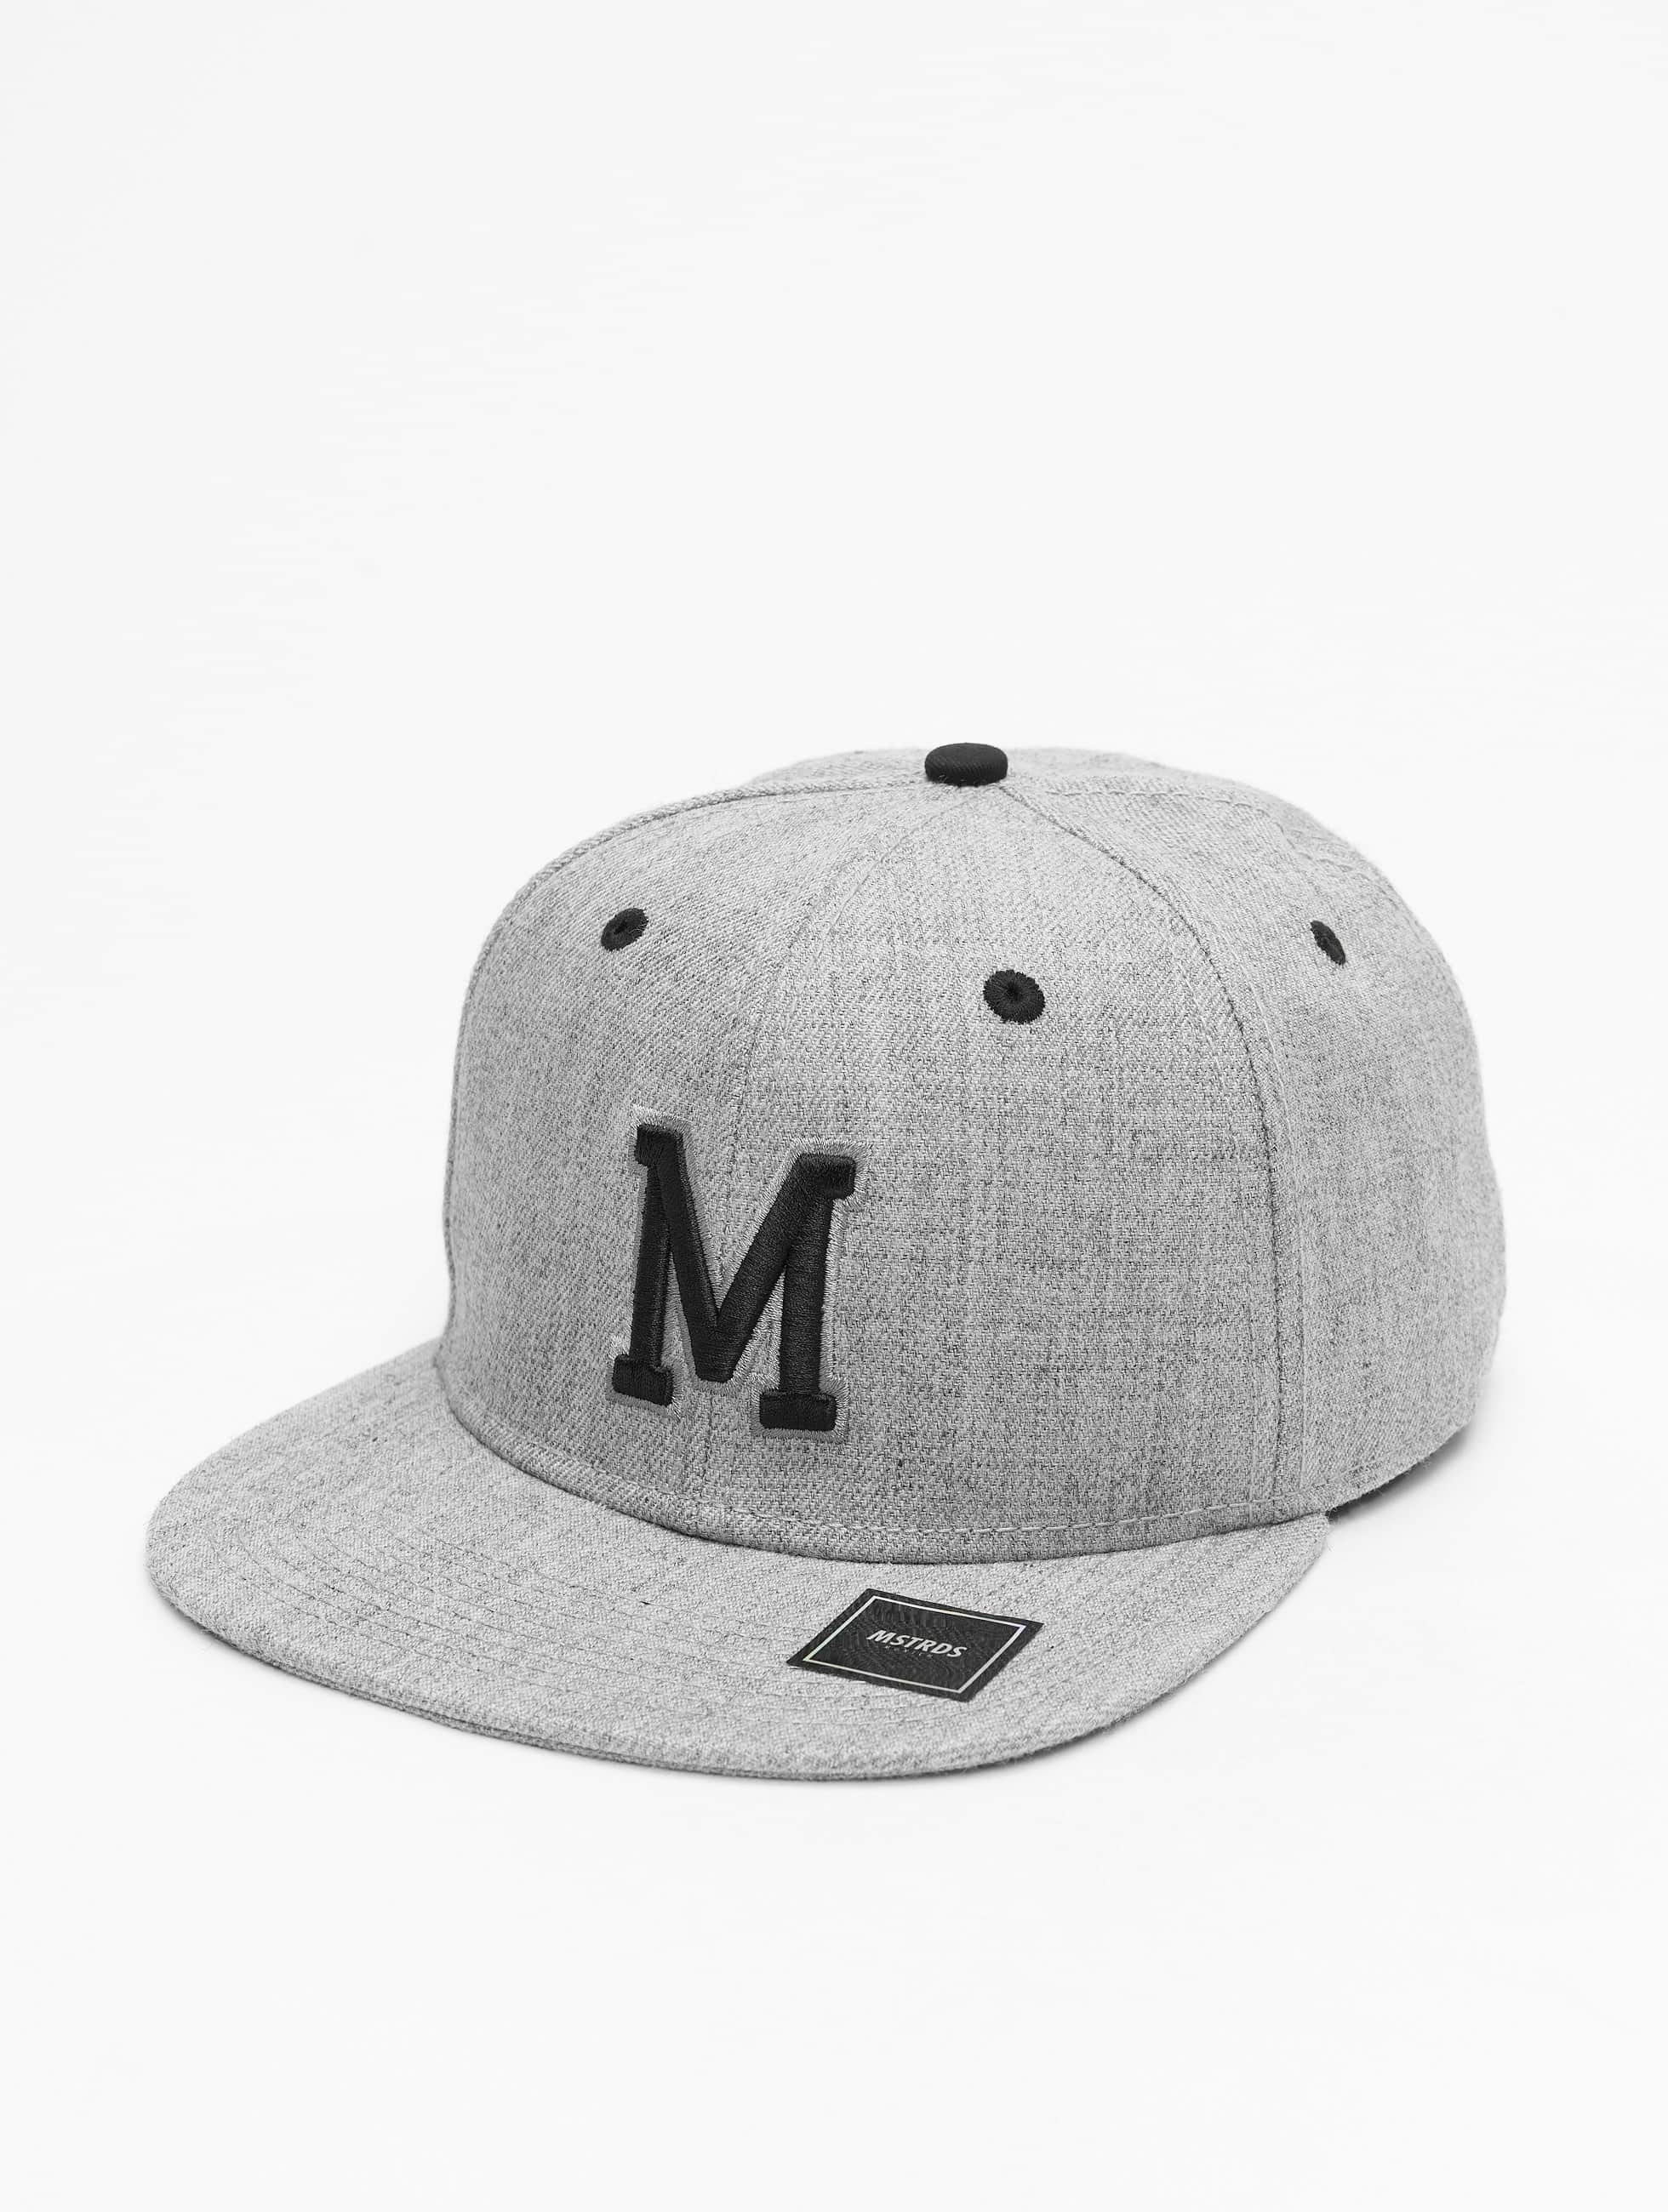 MSTRDS Snapback Caps M Letter szary